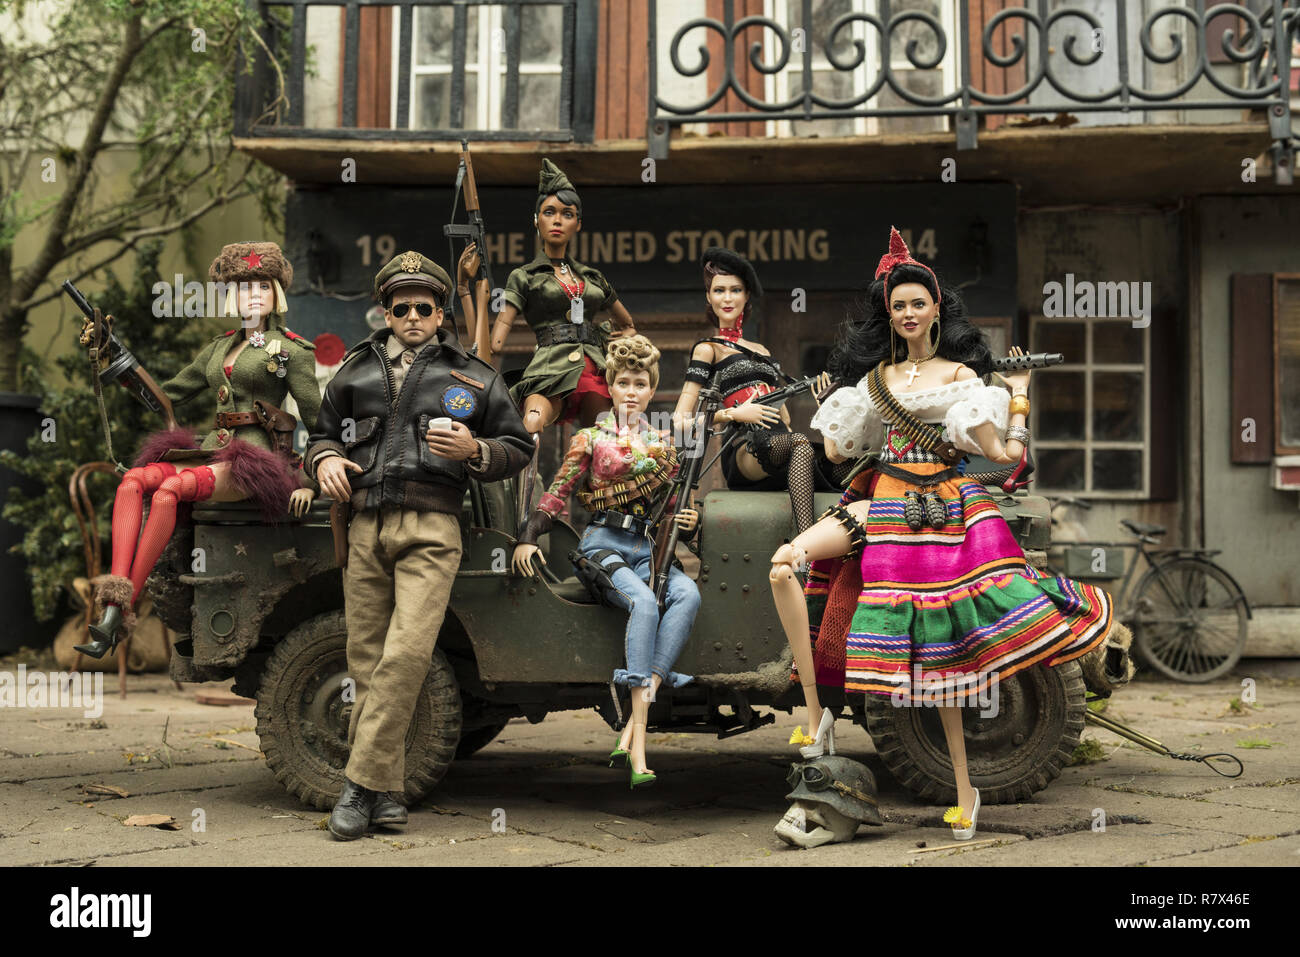 The dolls of Marwen (from left): Anna (Gwendoline Christie), Cap'n Hogie (Steve Carell), GI Julie (Janelle Monáe), Roberta (Merritt Wever), Suzette (Leslie Zemeckis) and Carlala (Eiza Gonzalez) in 'Welcome to Marwen,' directed by Robert Zemeckis.  Photo Credit: Universal Pictures and Storyteller Distribution Co., LLC. / The Hollywood Archive - Stock Image